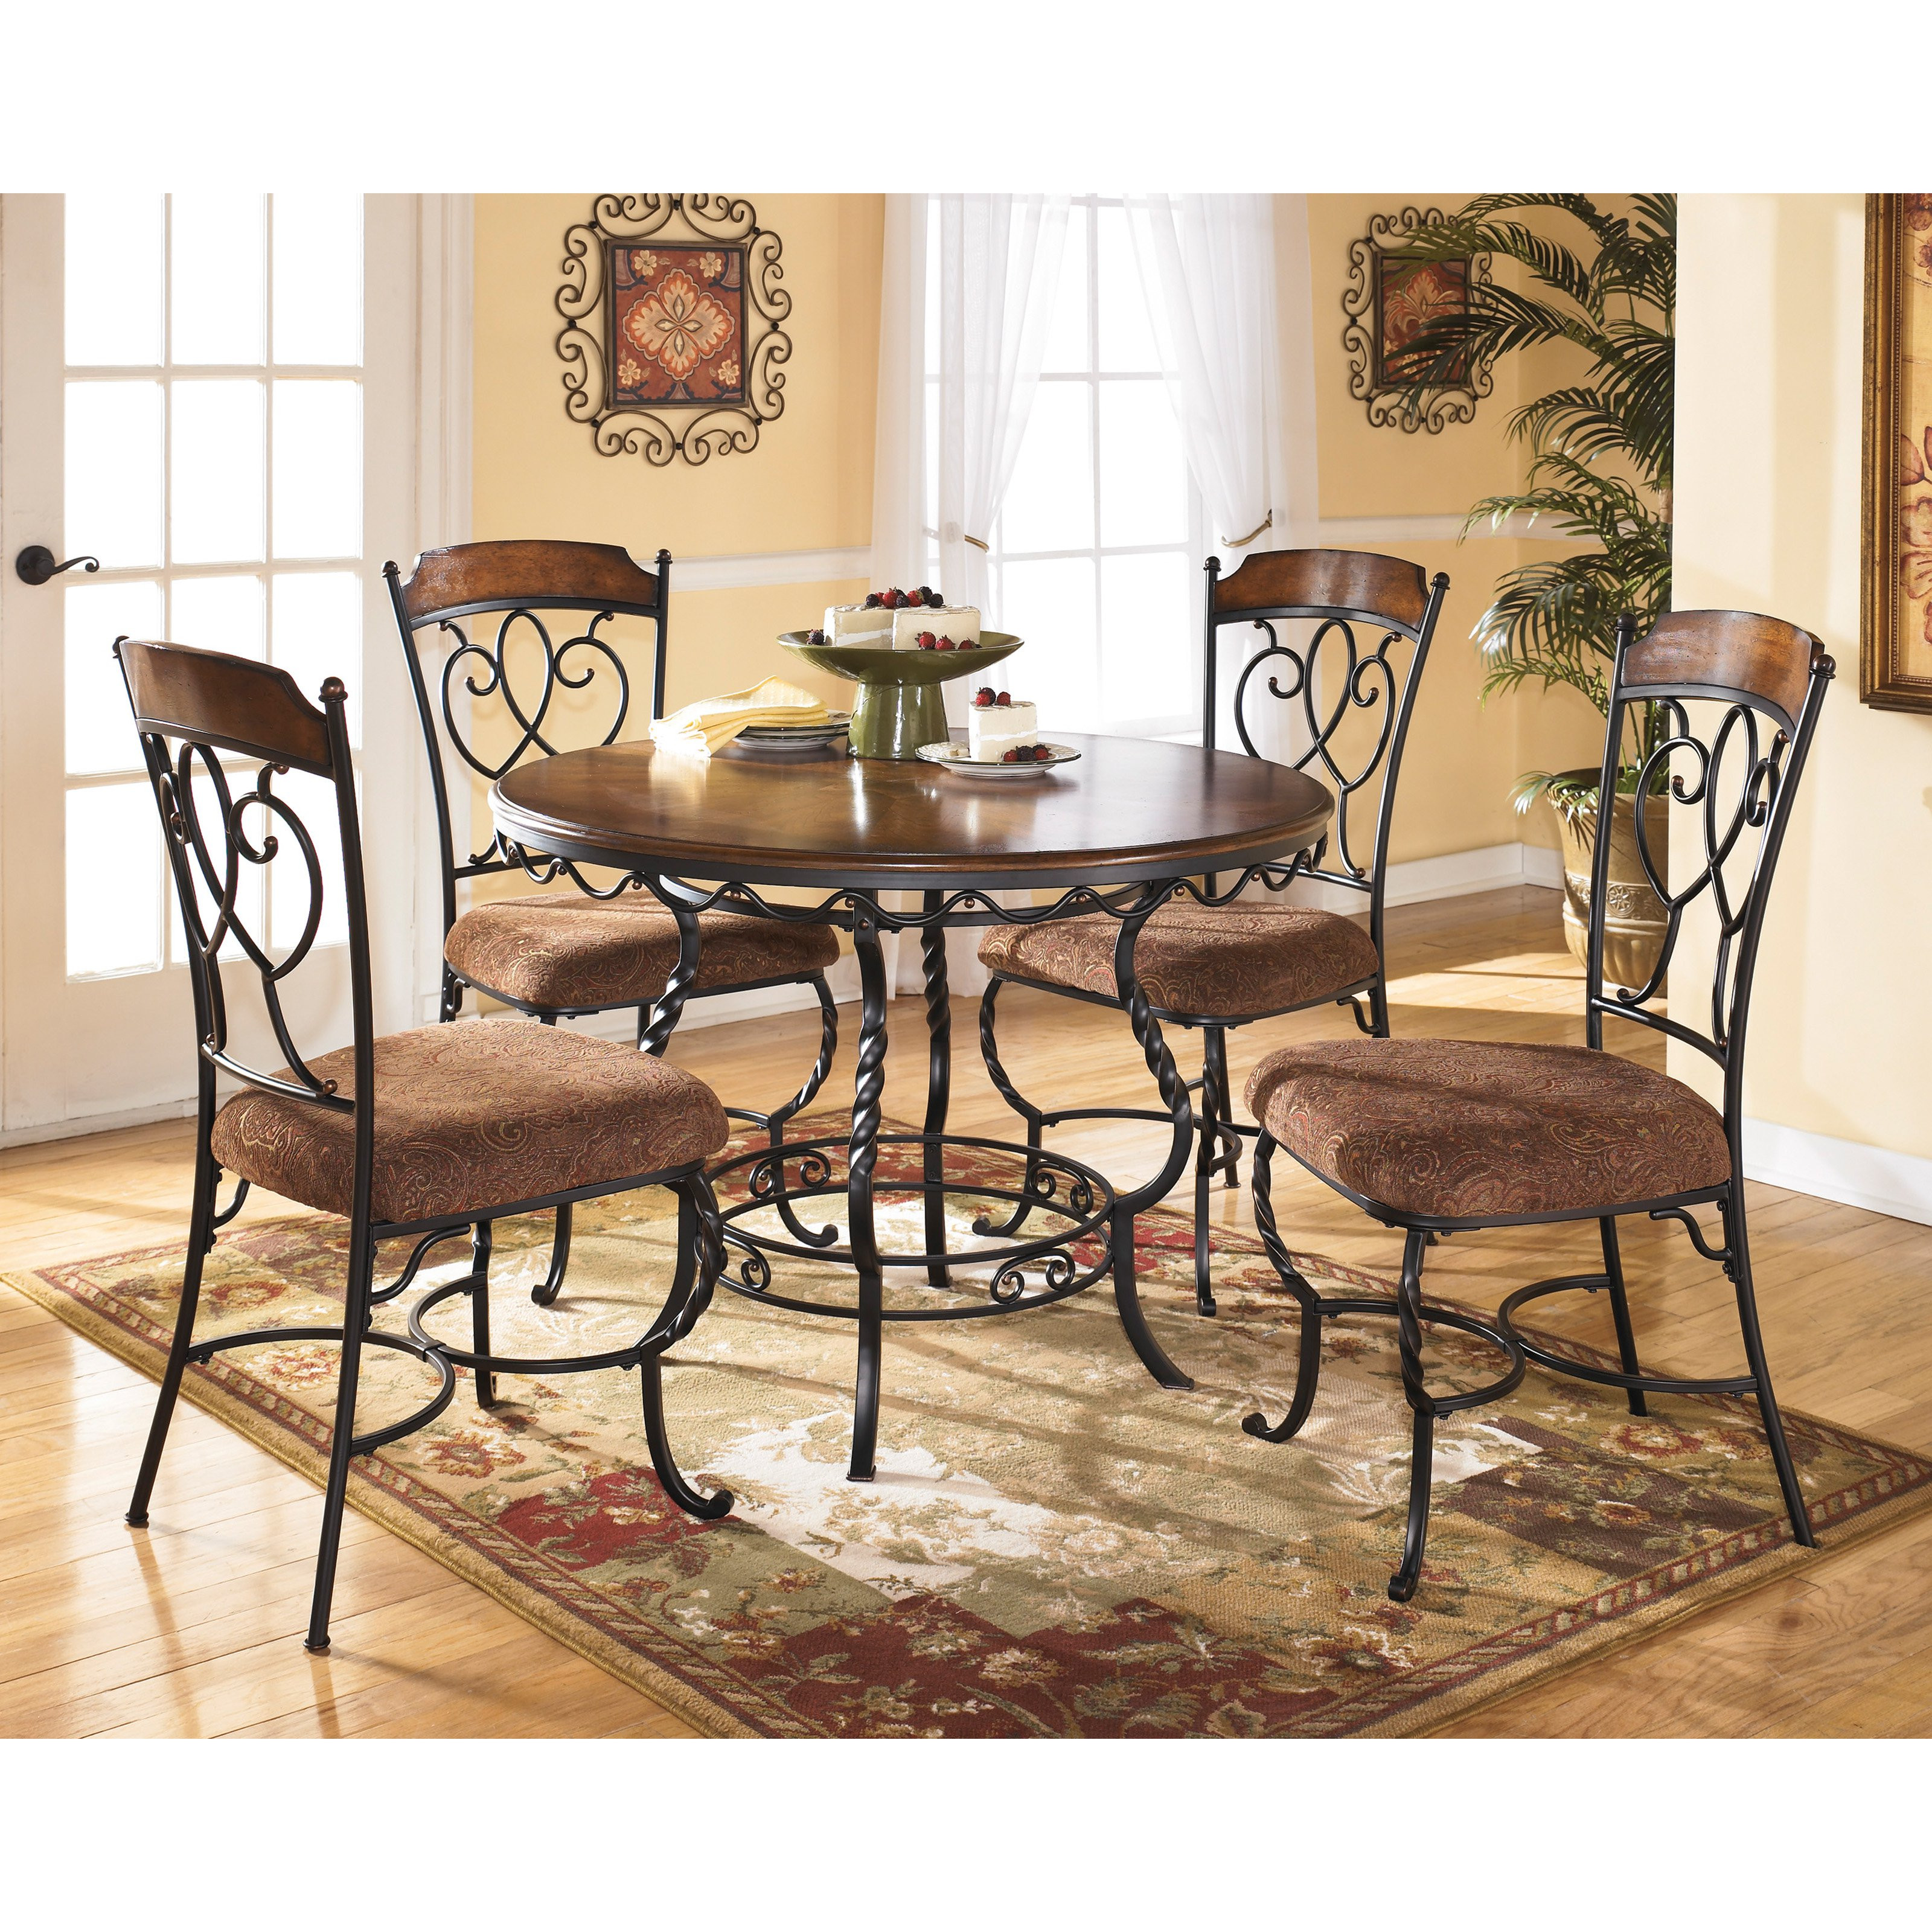 Best ideas about Ashley Furniture Dining Sets . Save or Pin Signature Design by Ashley Nola 5 Piece Round Dining Table Now.